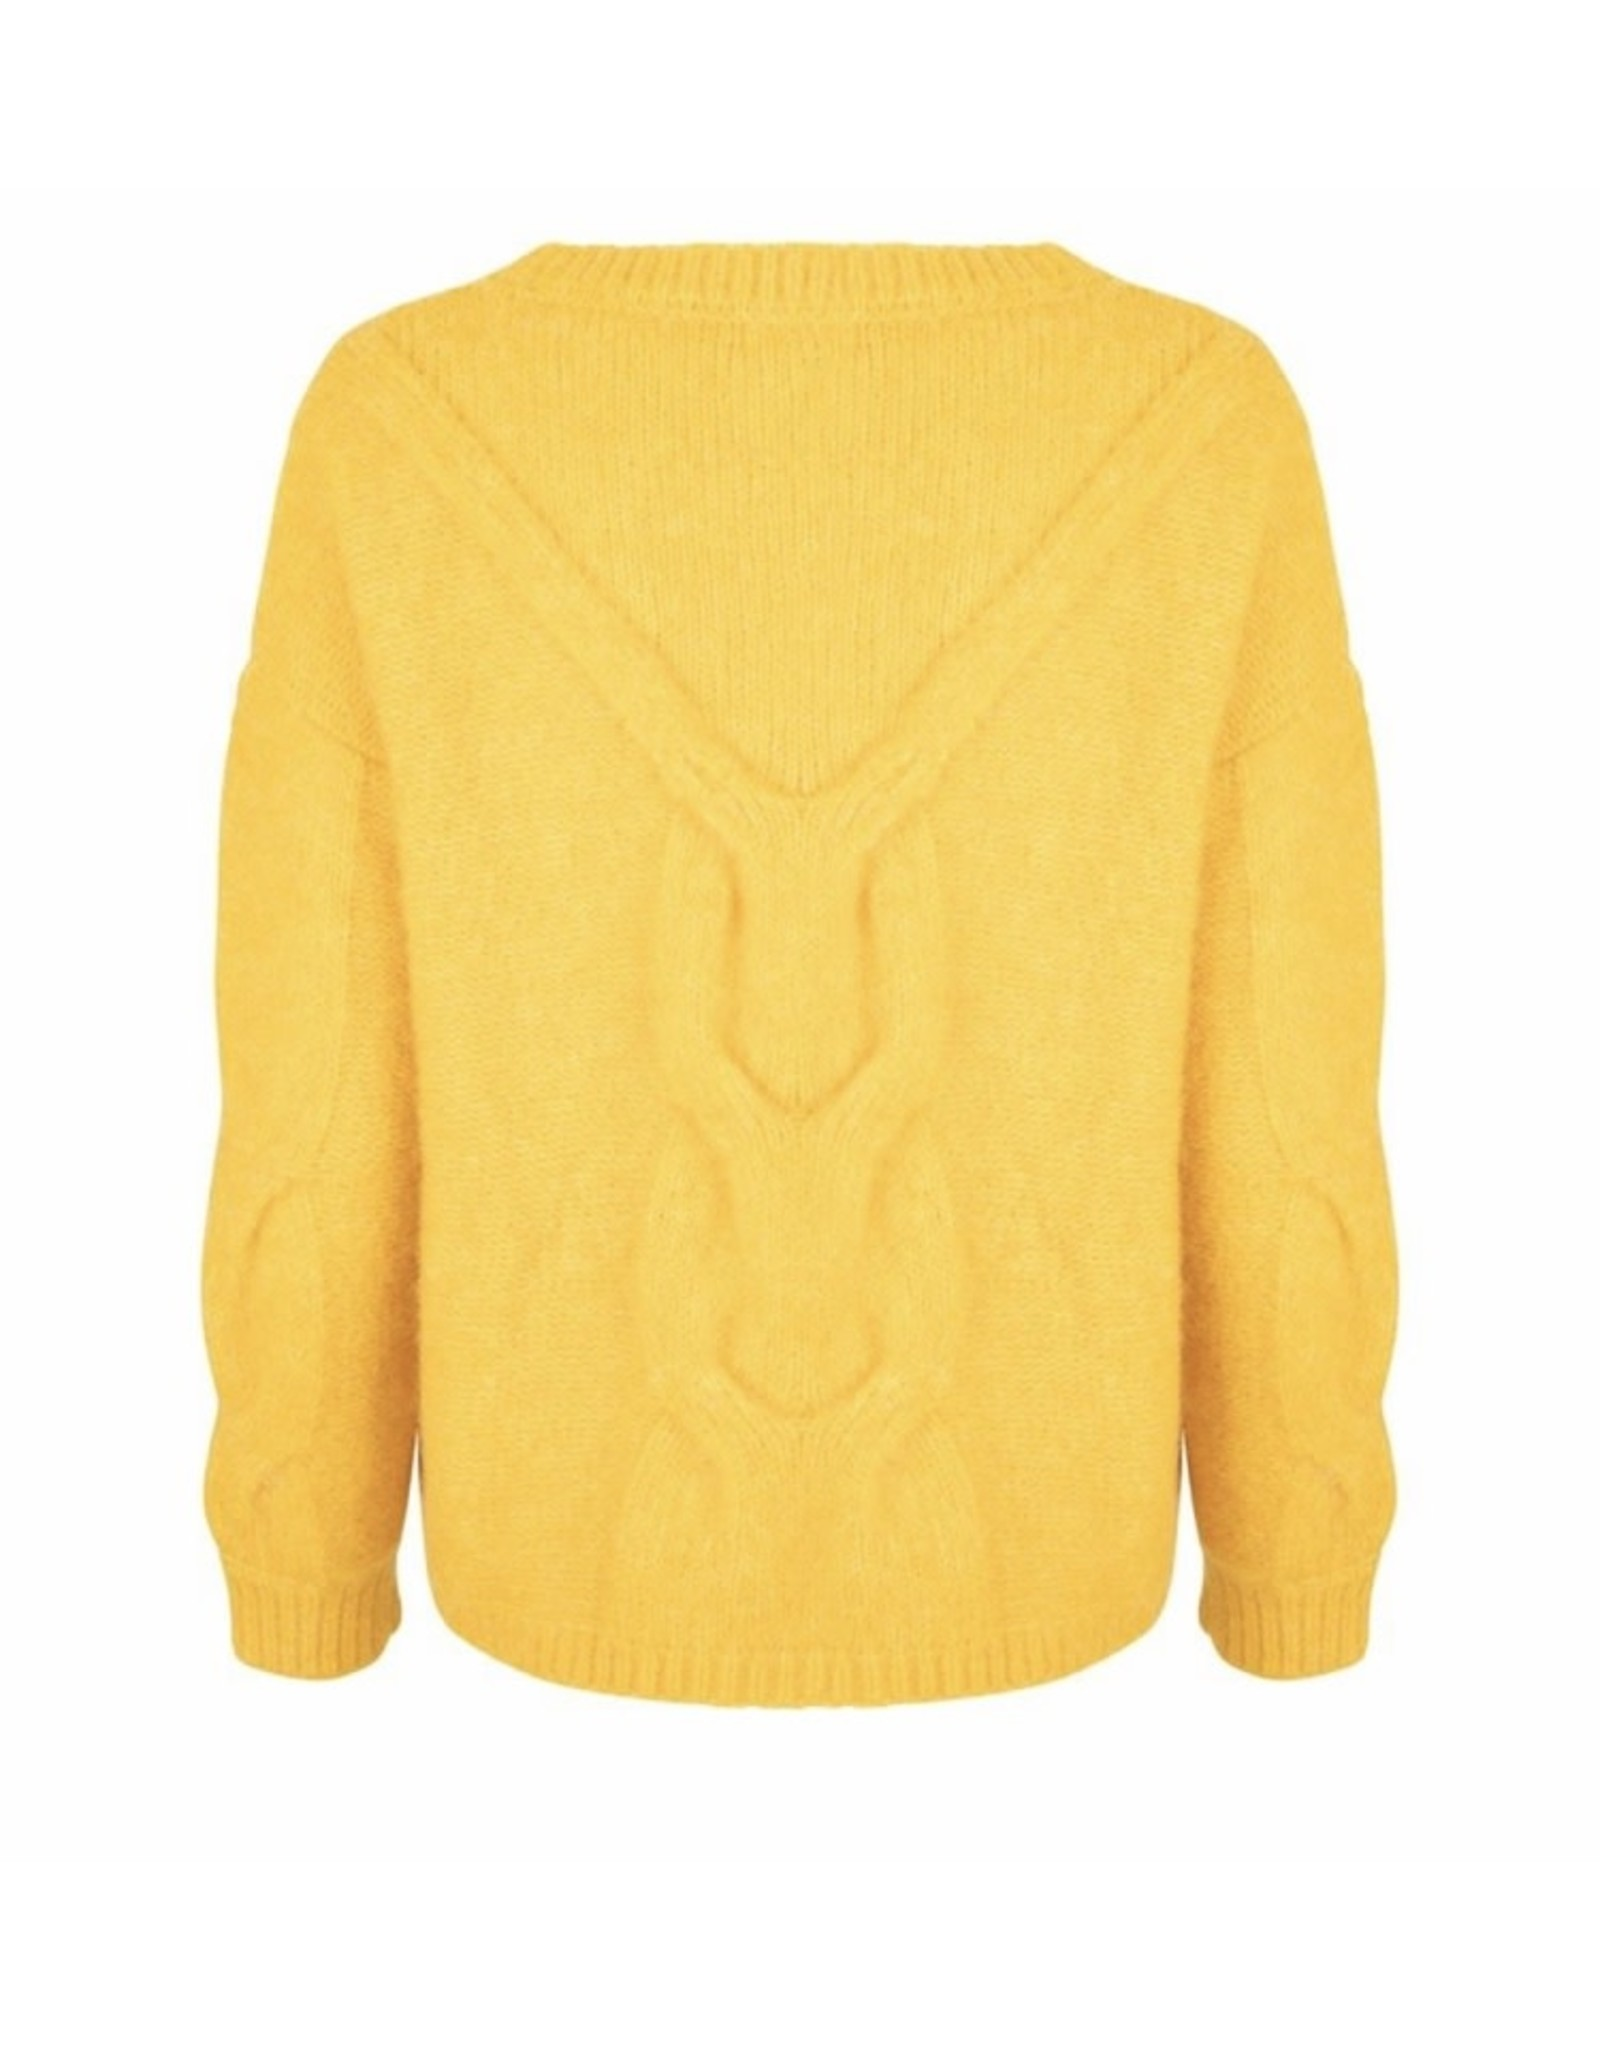 EsQualo EsQualo - Cable stitch sweater